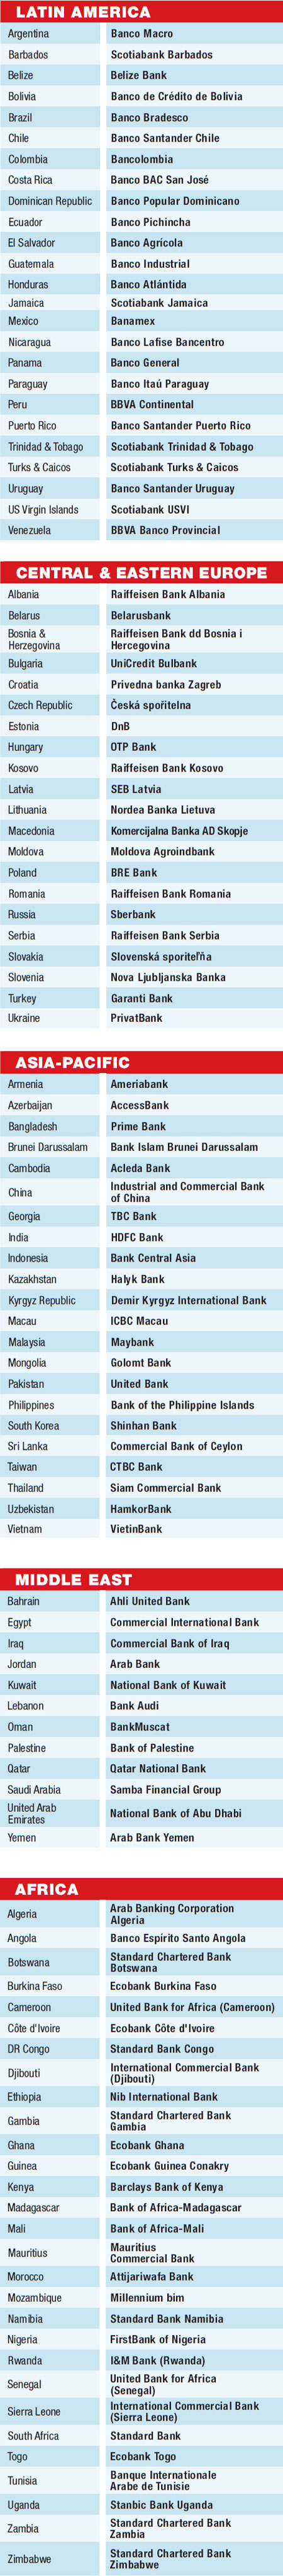 01d-world-best-banks-country-winners-emerging-markets